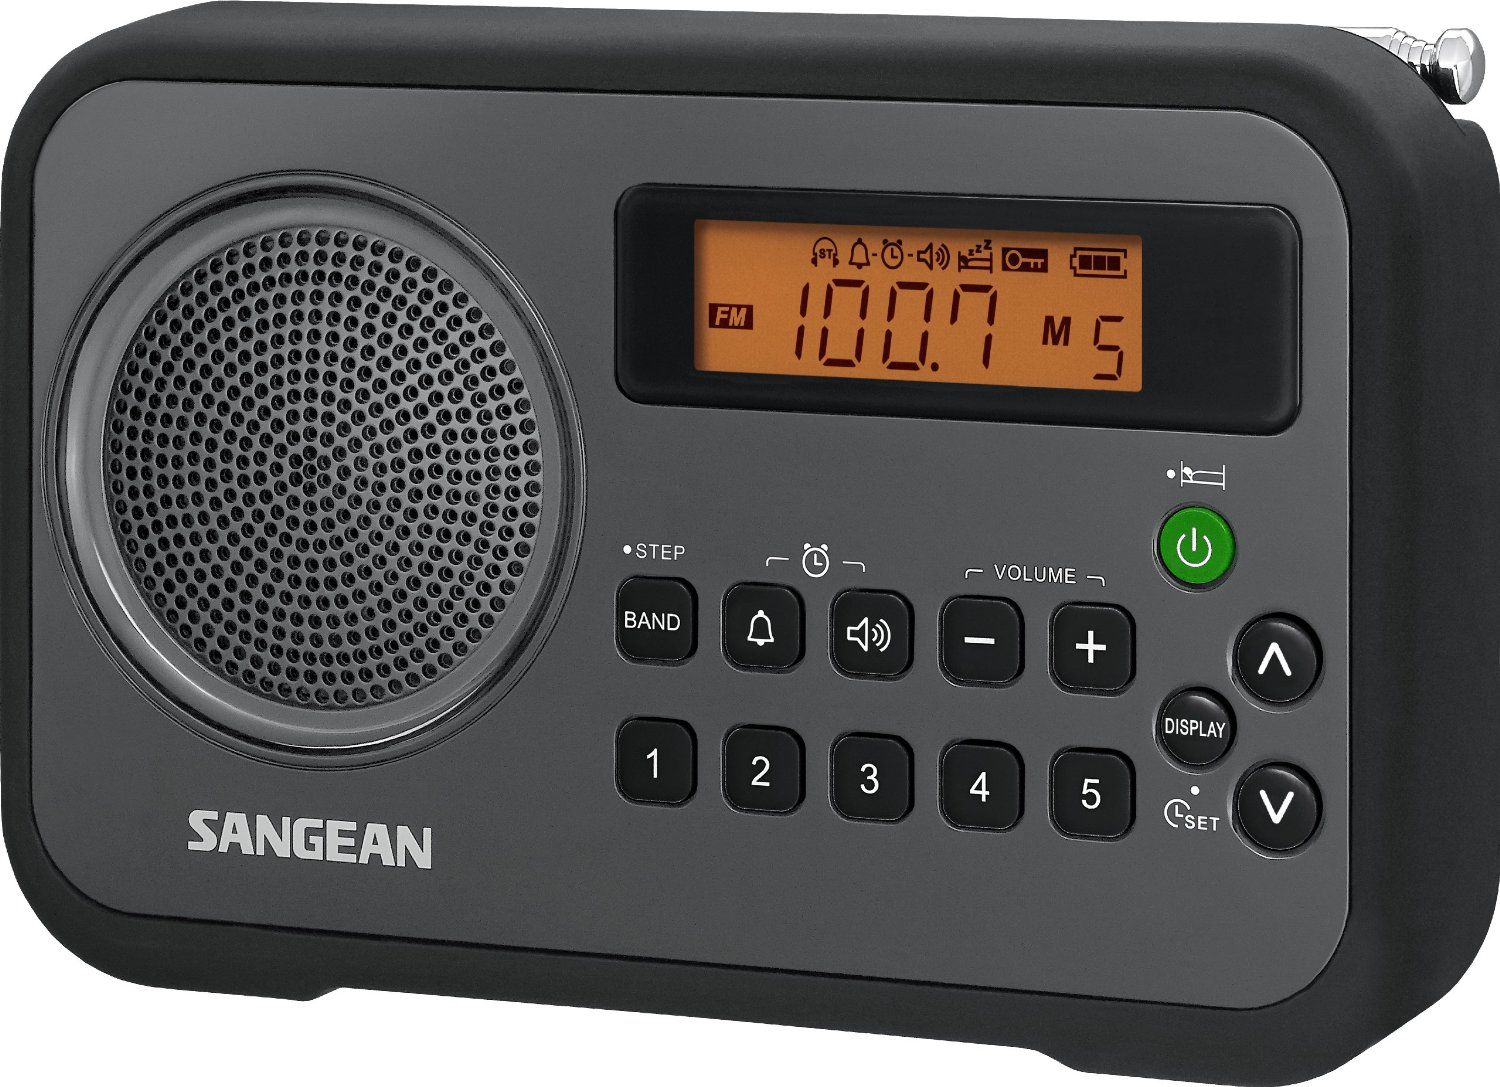 sangean pr d18 dsp am fm digital portable radio. Black Bedroom Furniture Sets. Home Design Ideas